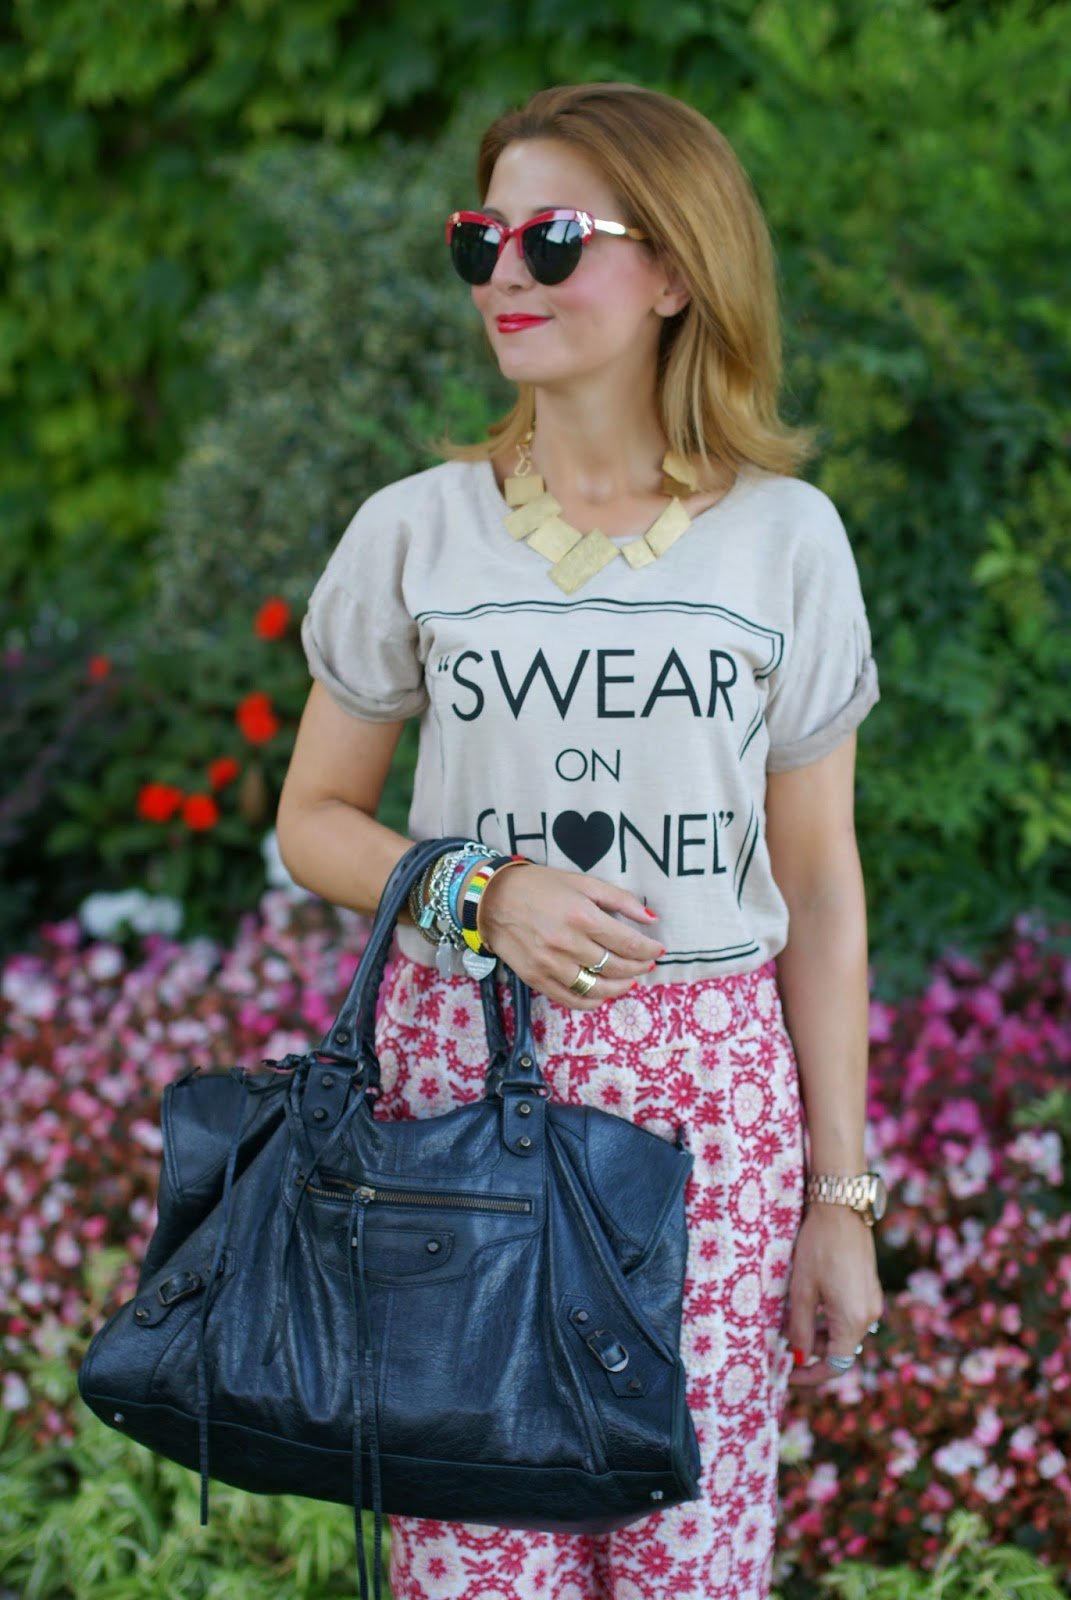 Swear on Chanel t-shirt, Spitfire sunglasses, Balenciaga work bag, crochet culottes pants, Fashion and Cookies, fashion blogger